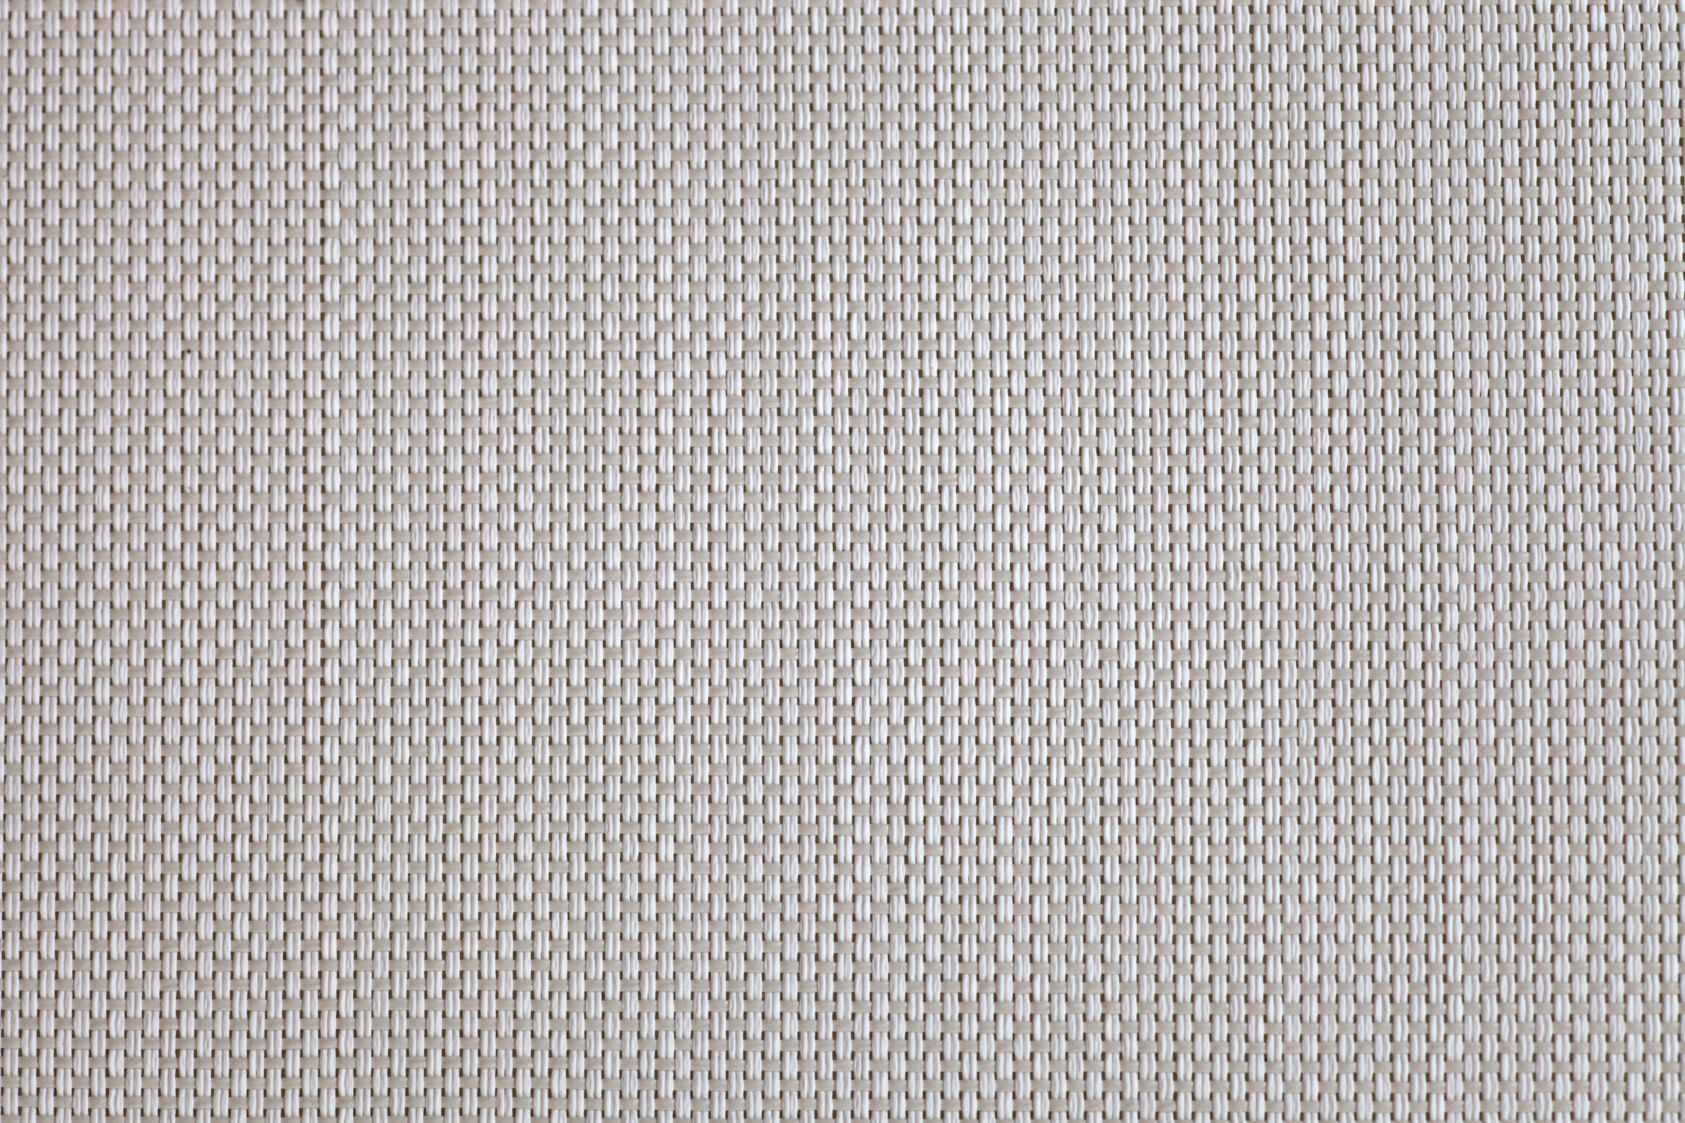 DuoScreen_White_Stone_Medium